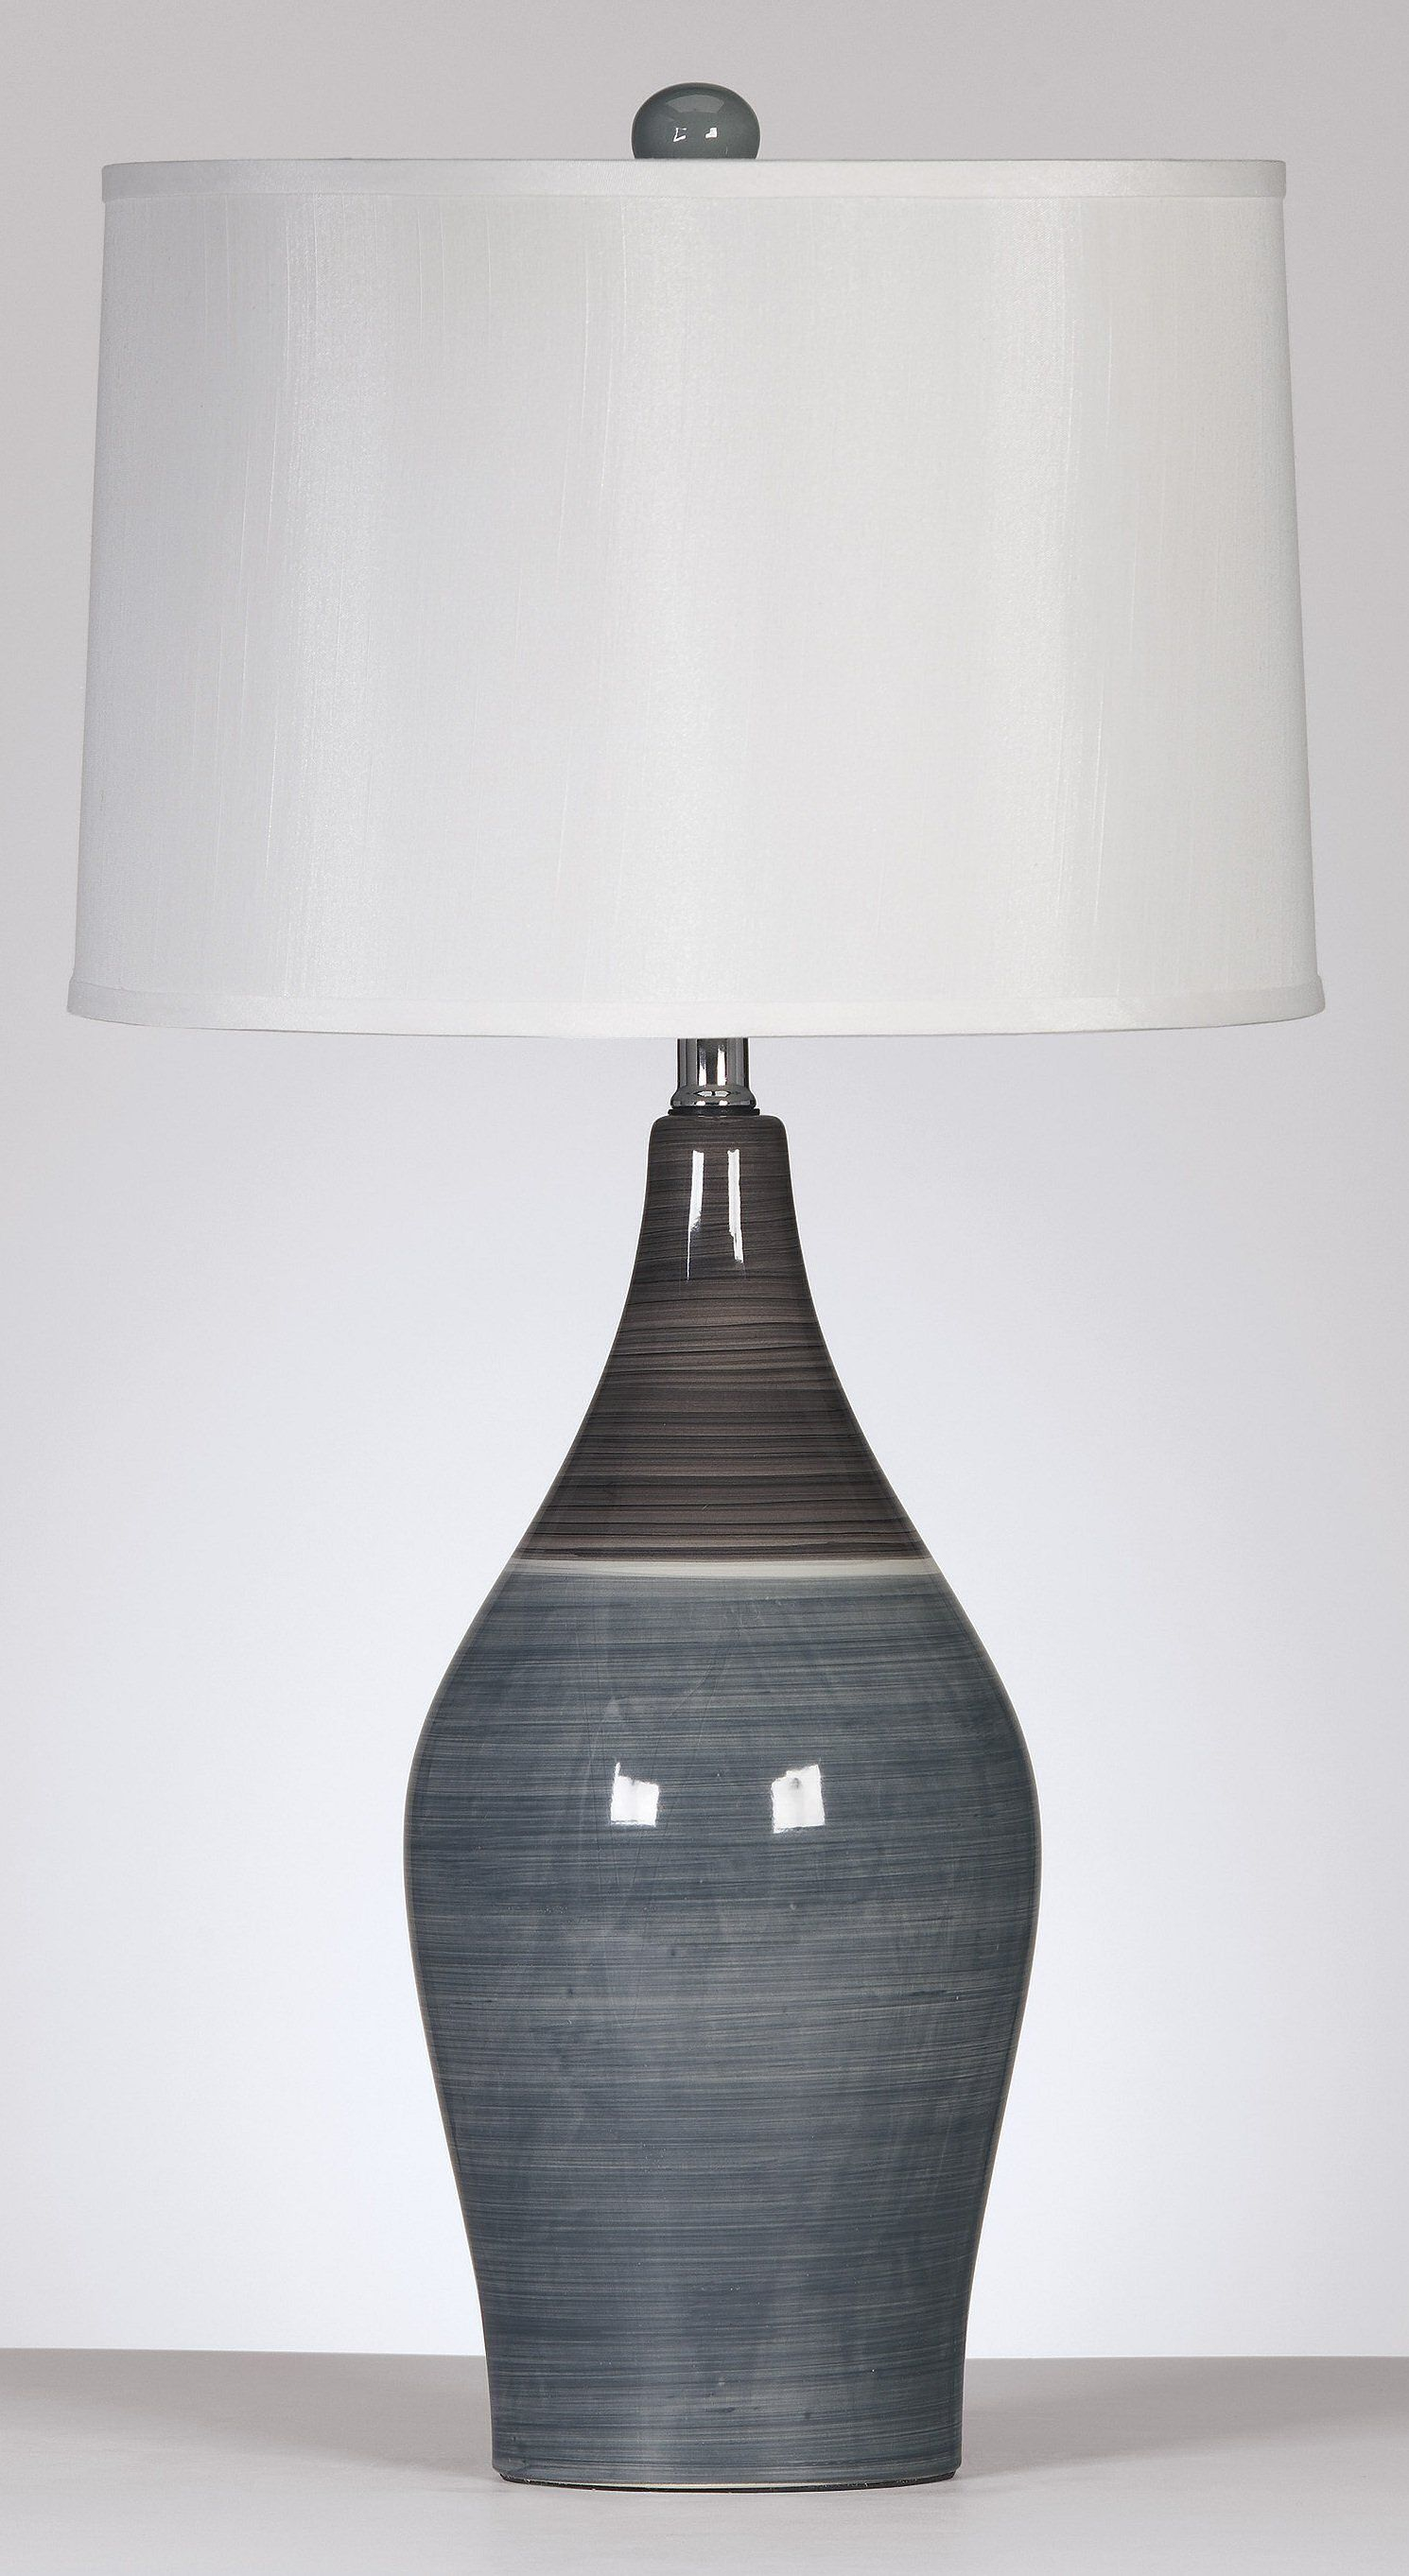 Niobe Ceramic Table Lamp By Ashley Furniture Coming Soon To Kensington S Website Grey Table Lamps Signature Design By Ashley Lampshade Designs